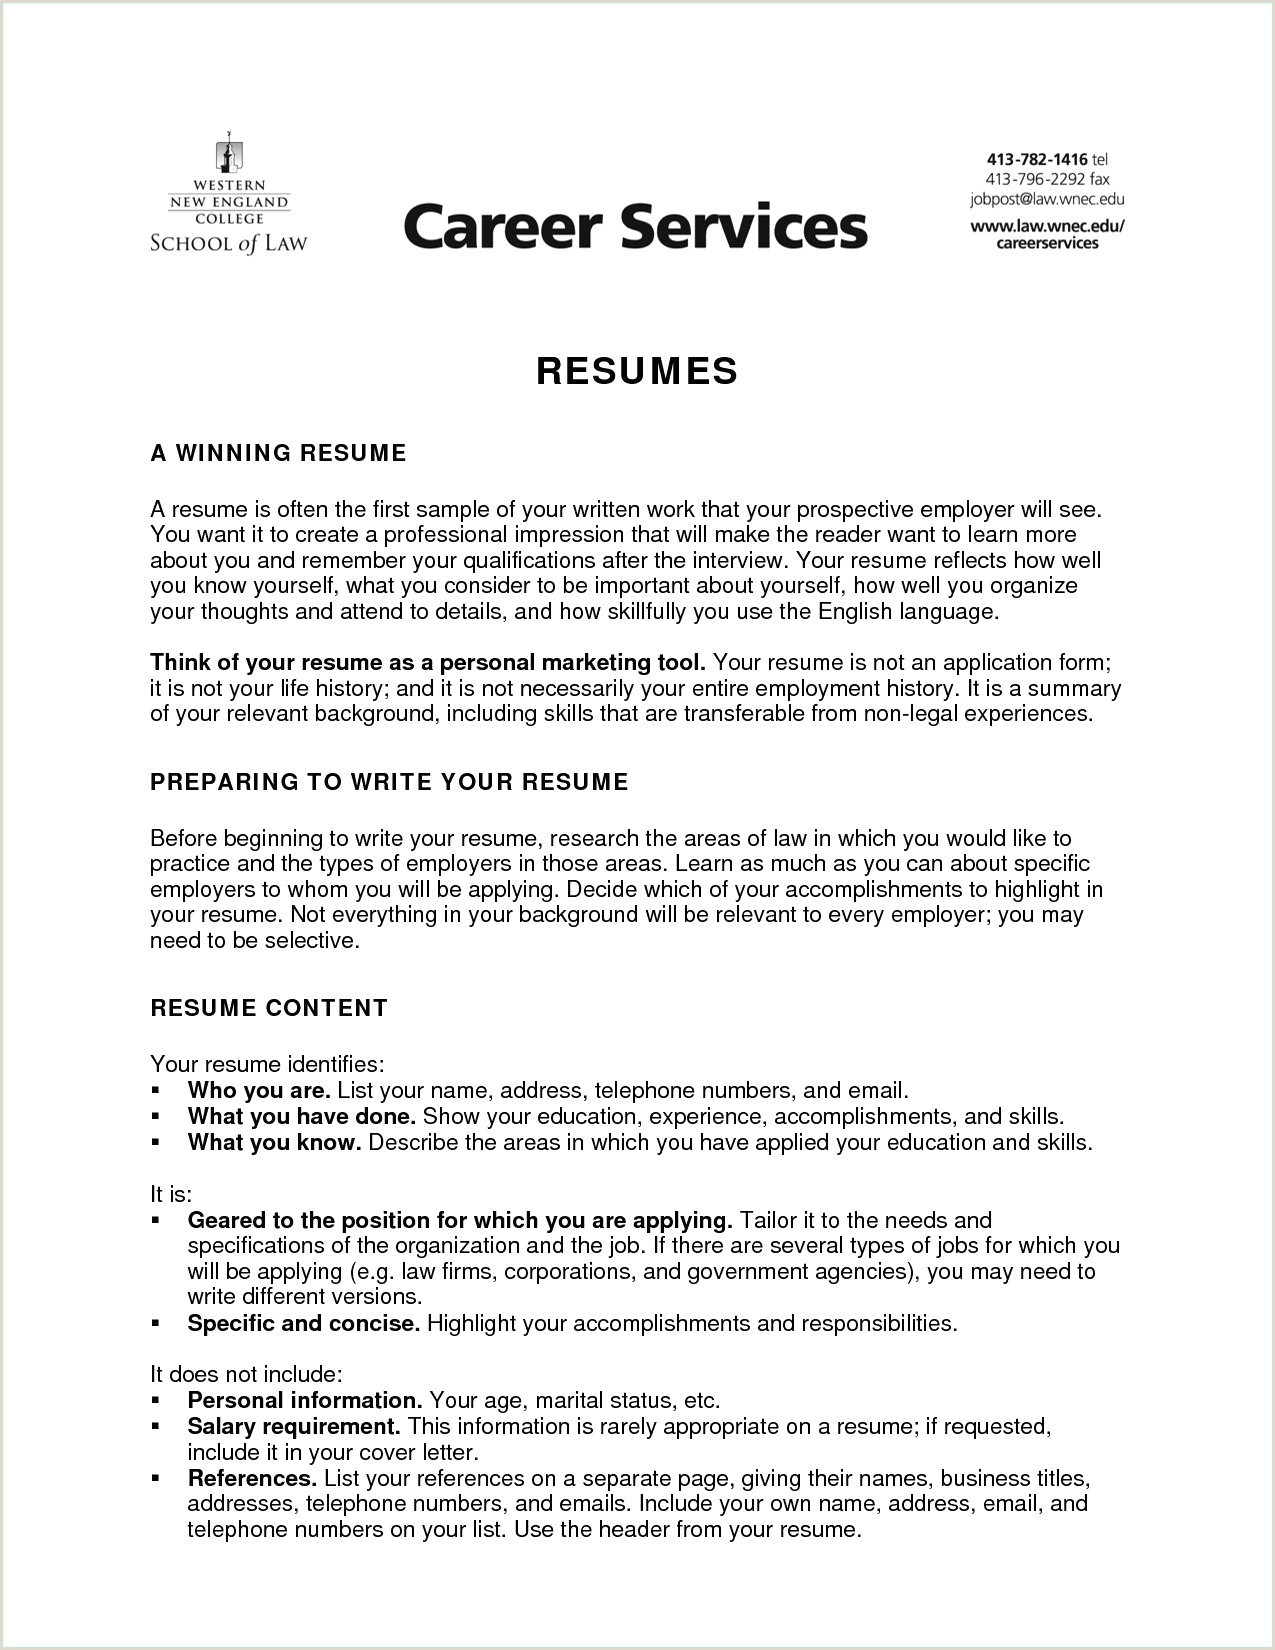 Legal Professional Cv format Resume Template Ideas New Customer Service Skills for Resume